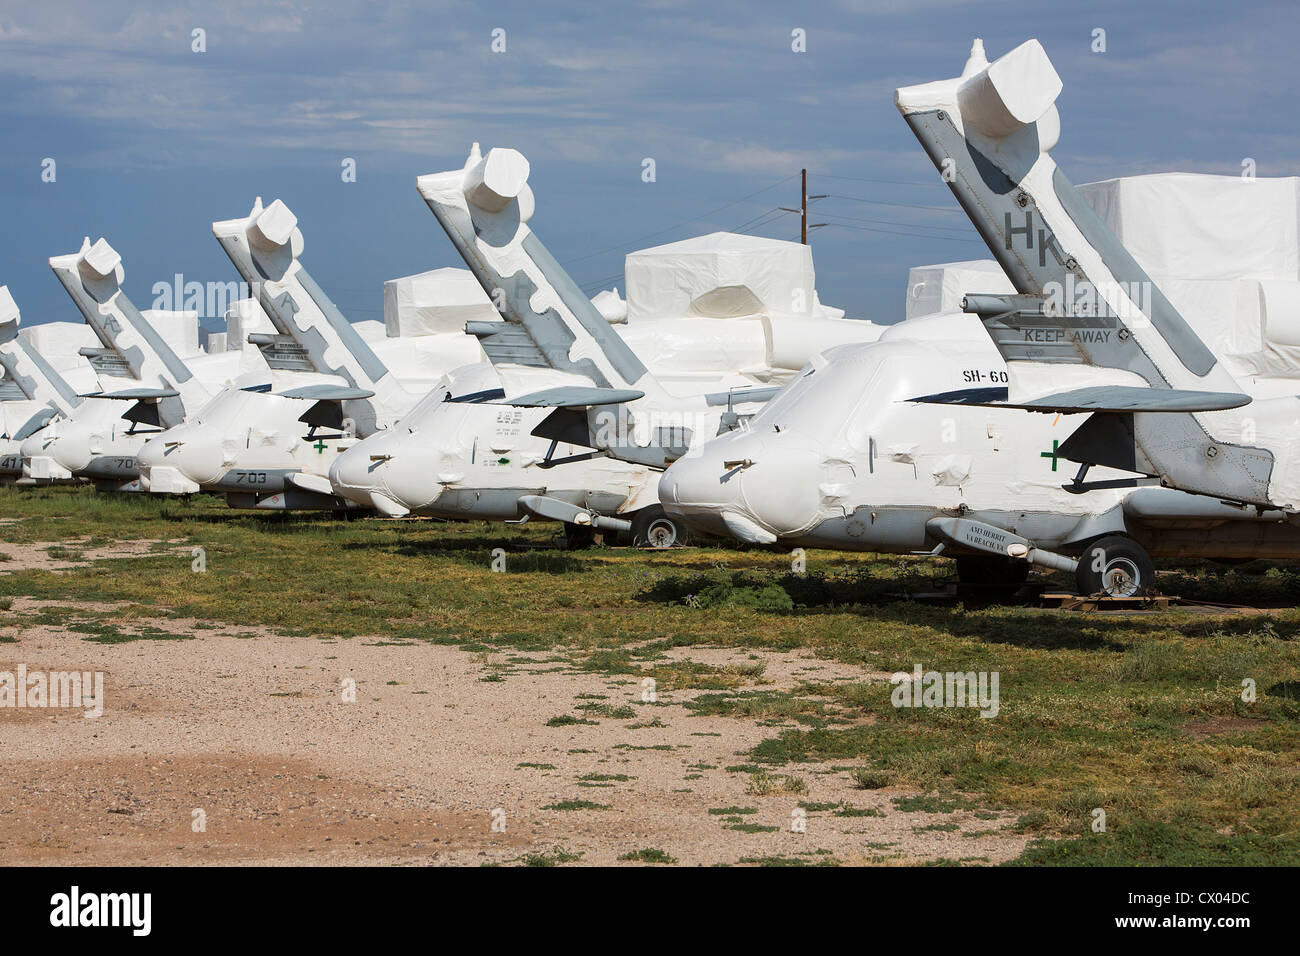 SH-60 Seahawk helicopters in storage at the 309th Aerospace Maintenance and Regeneration Group at Davis-Monthan - Stock Image